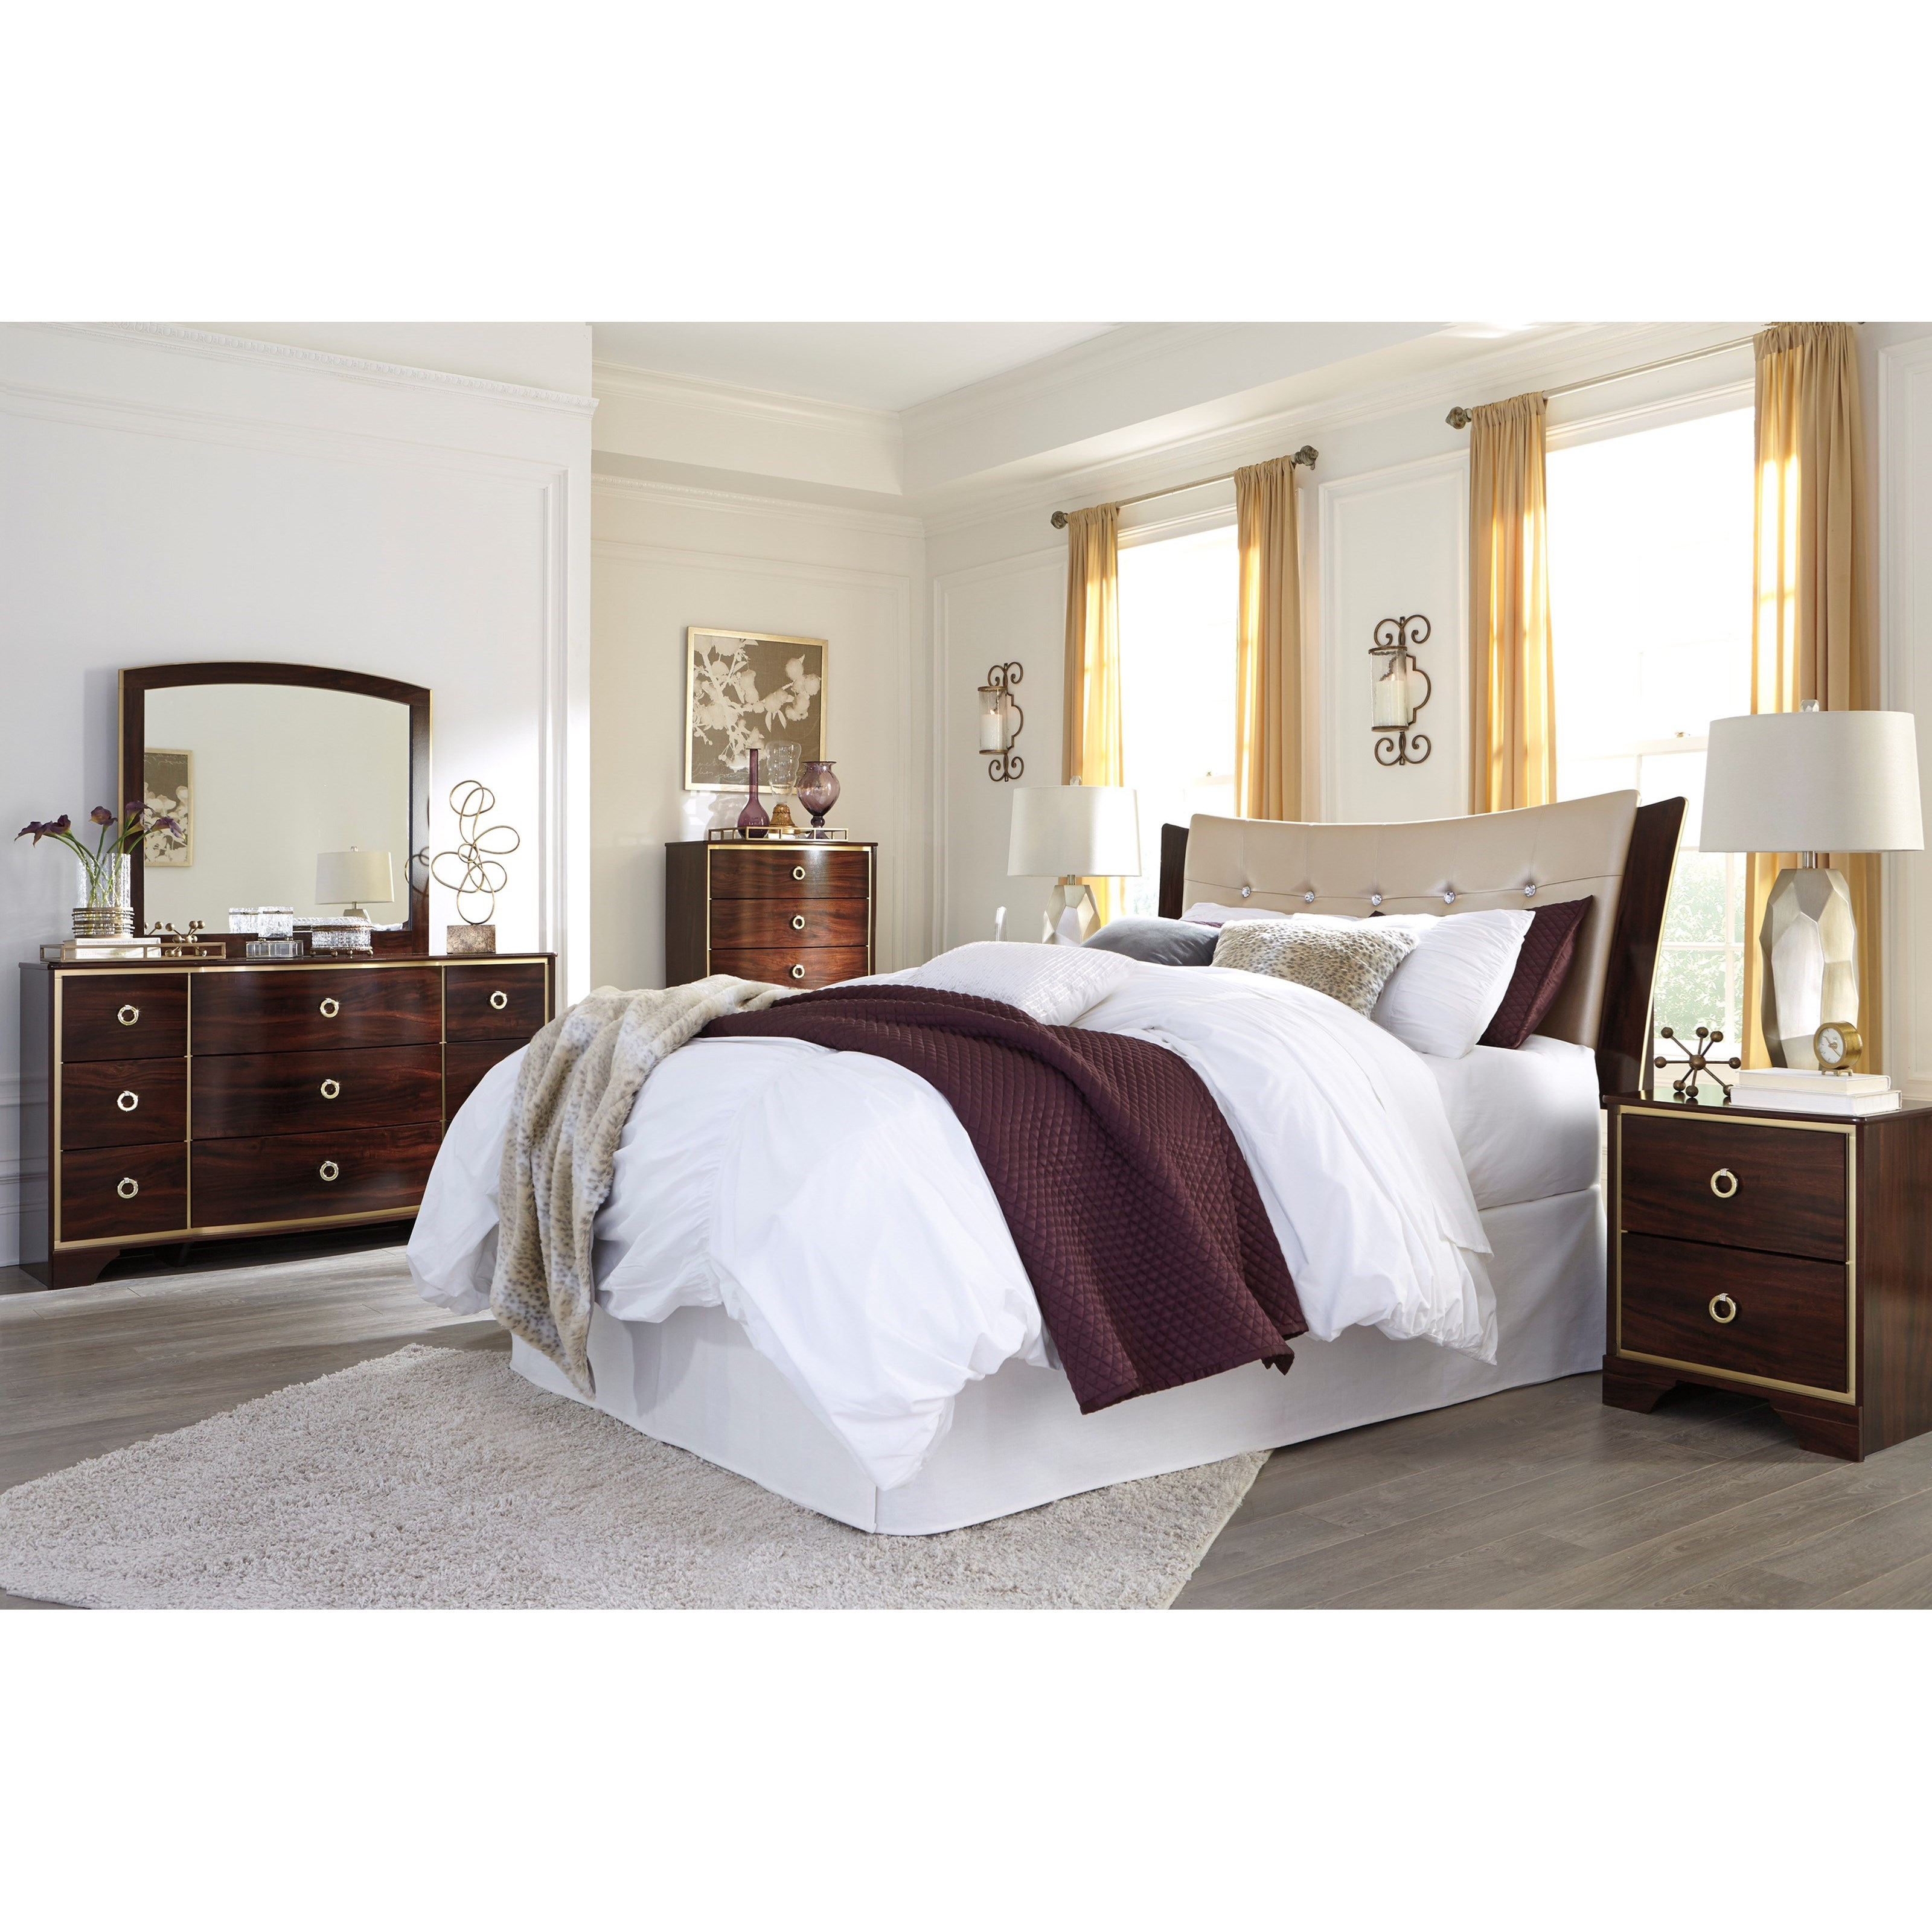 Signature Design By Ashley Lenmara Queen Full Bedroom Group Value City Furniture Bedroom Group